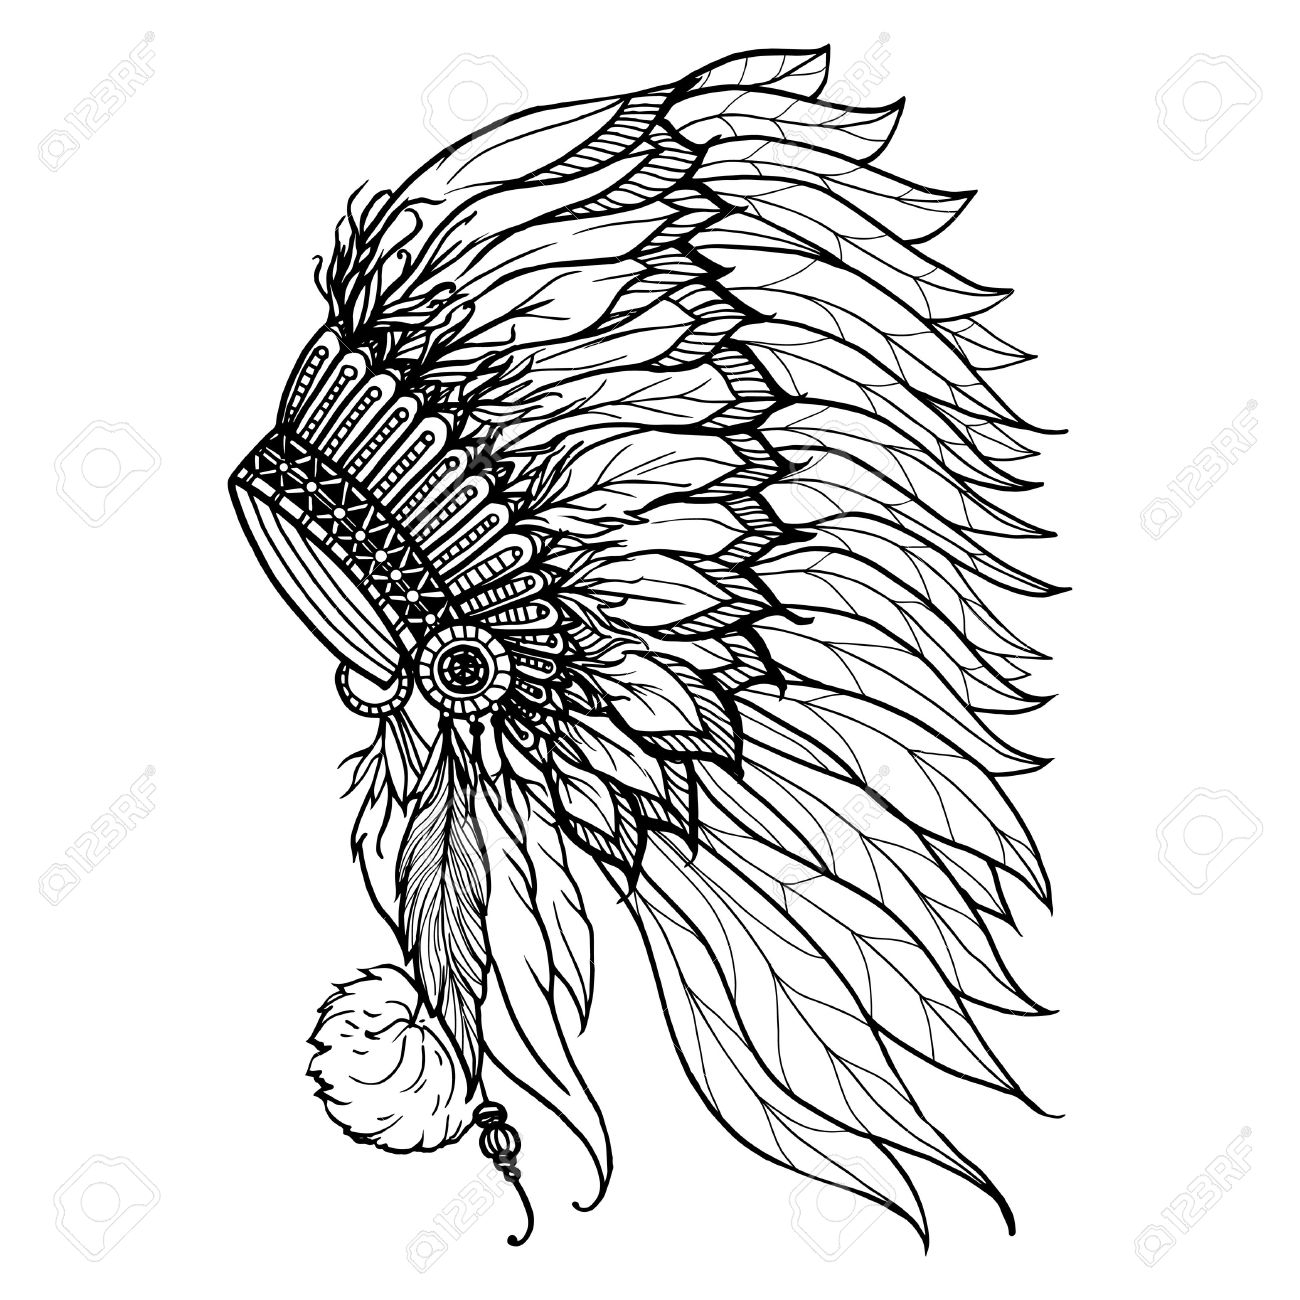 1300x1300 Native American Headdress Drawing Doodle Headdress For Native